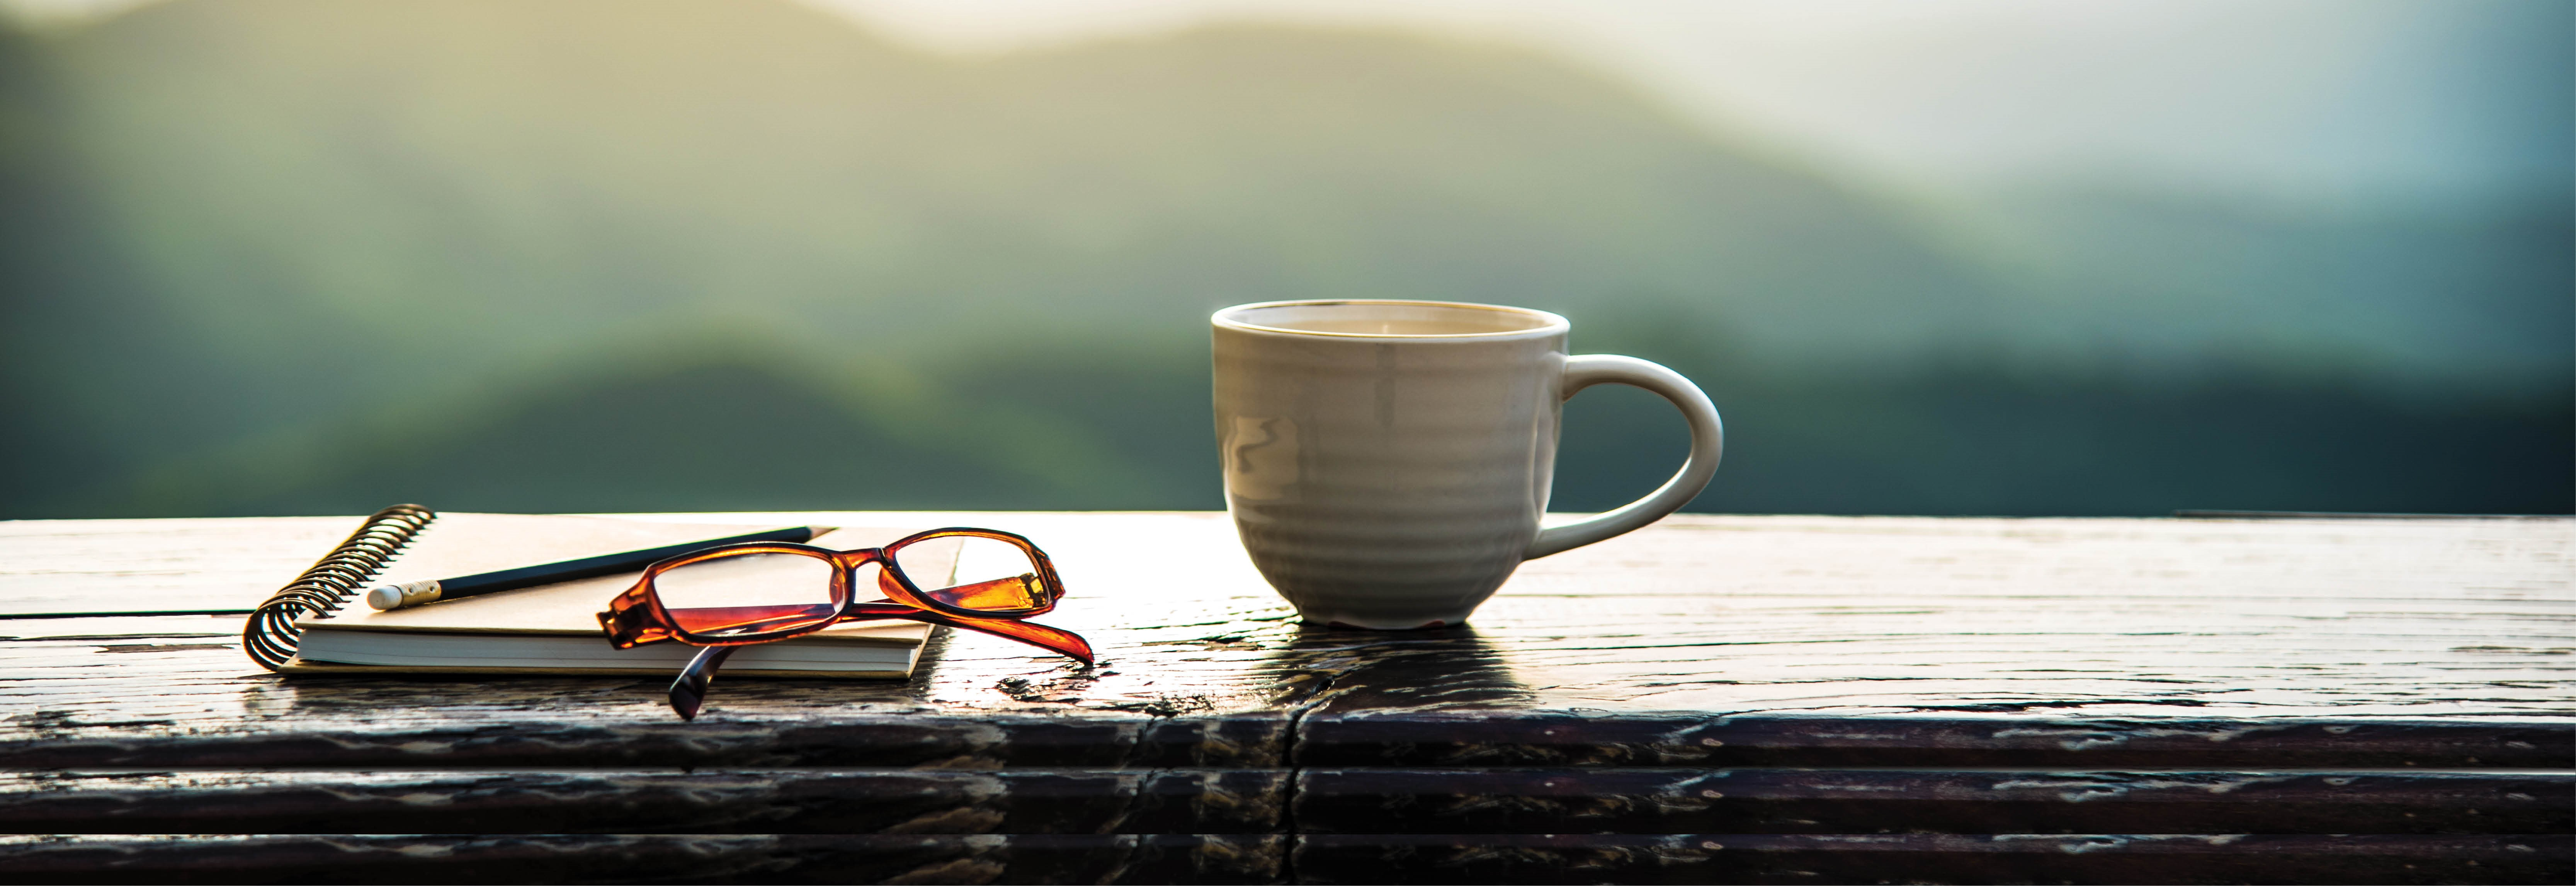 coffee mug, note pad and glasses on porch railing